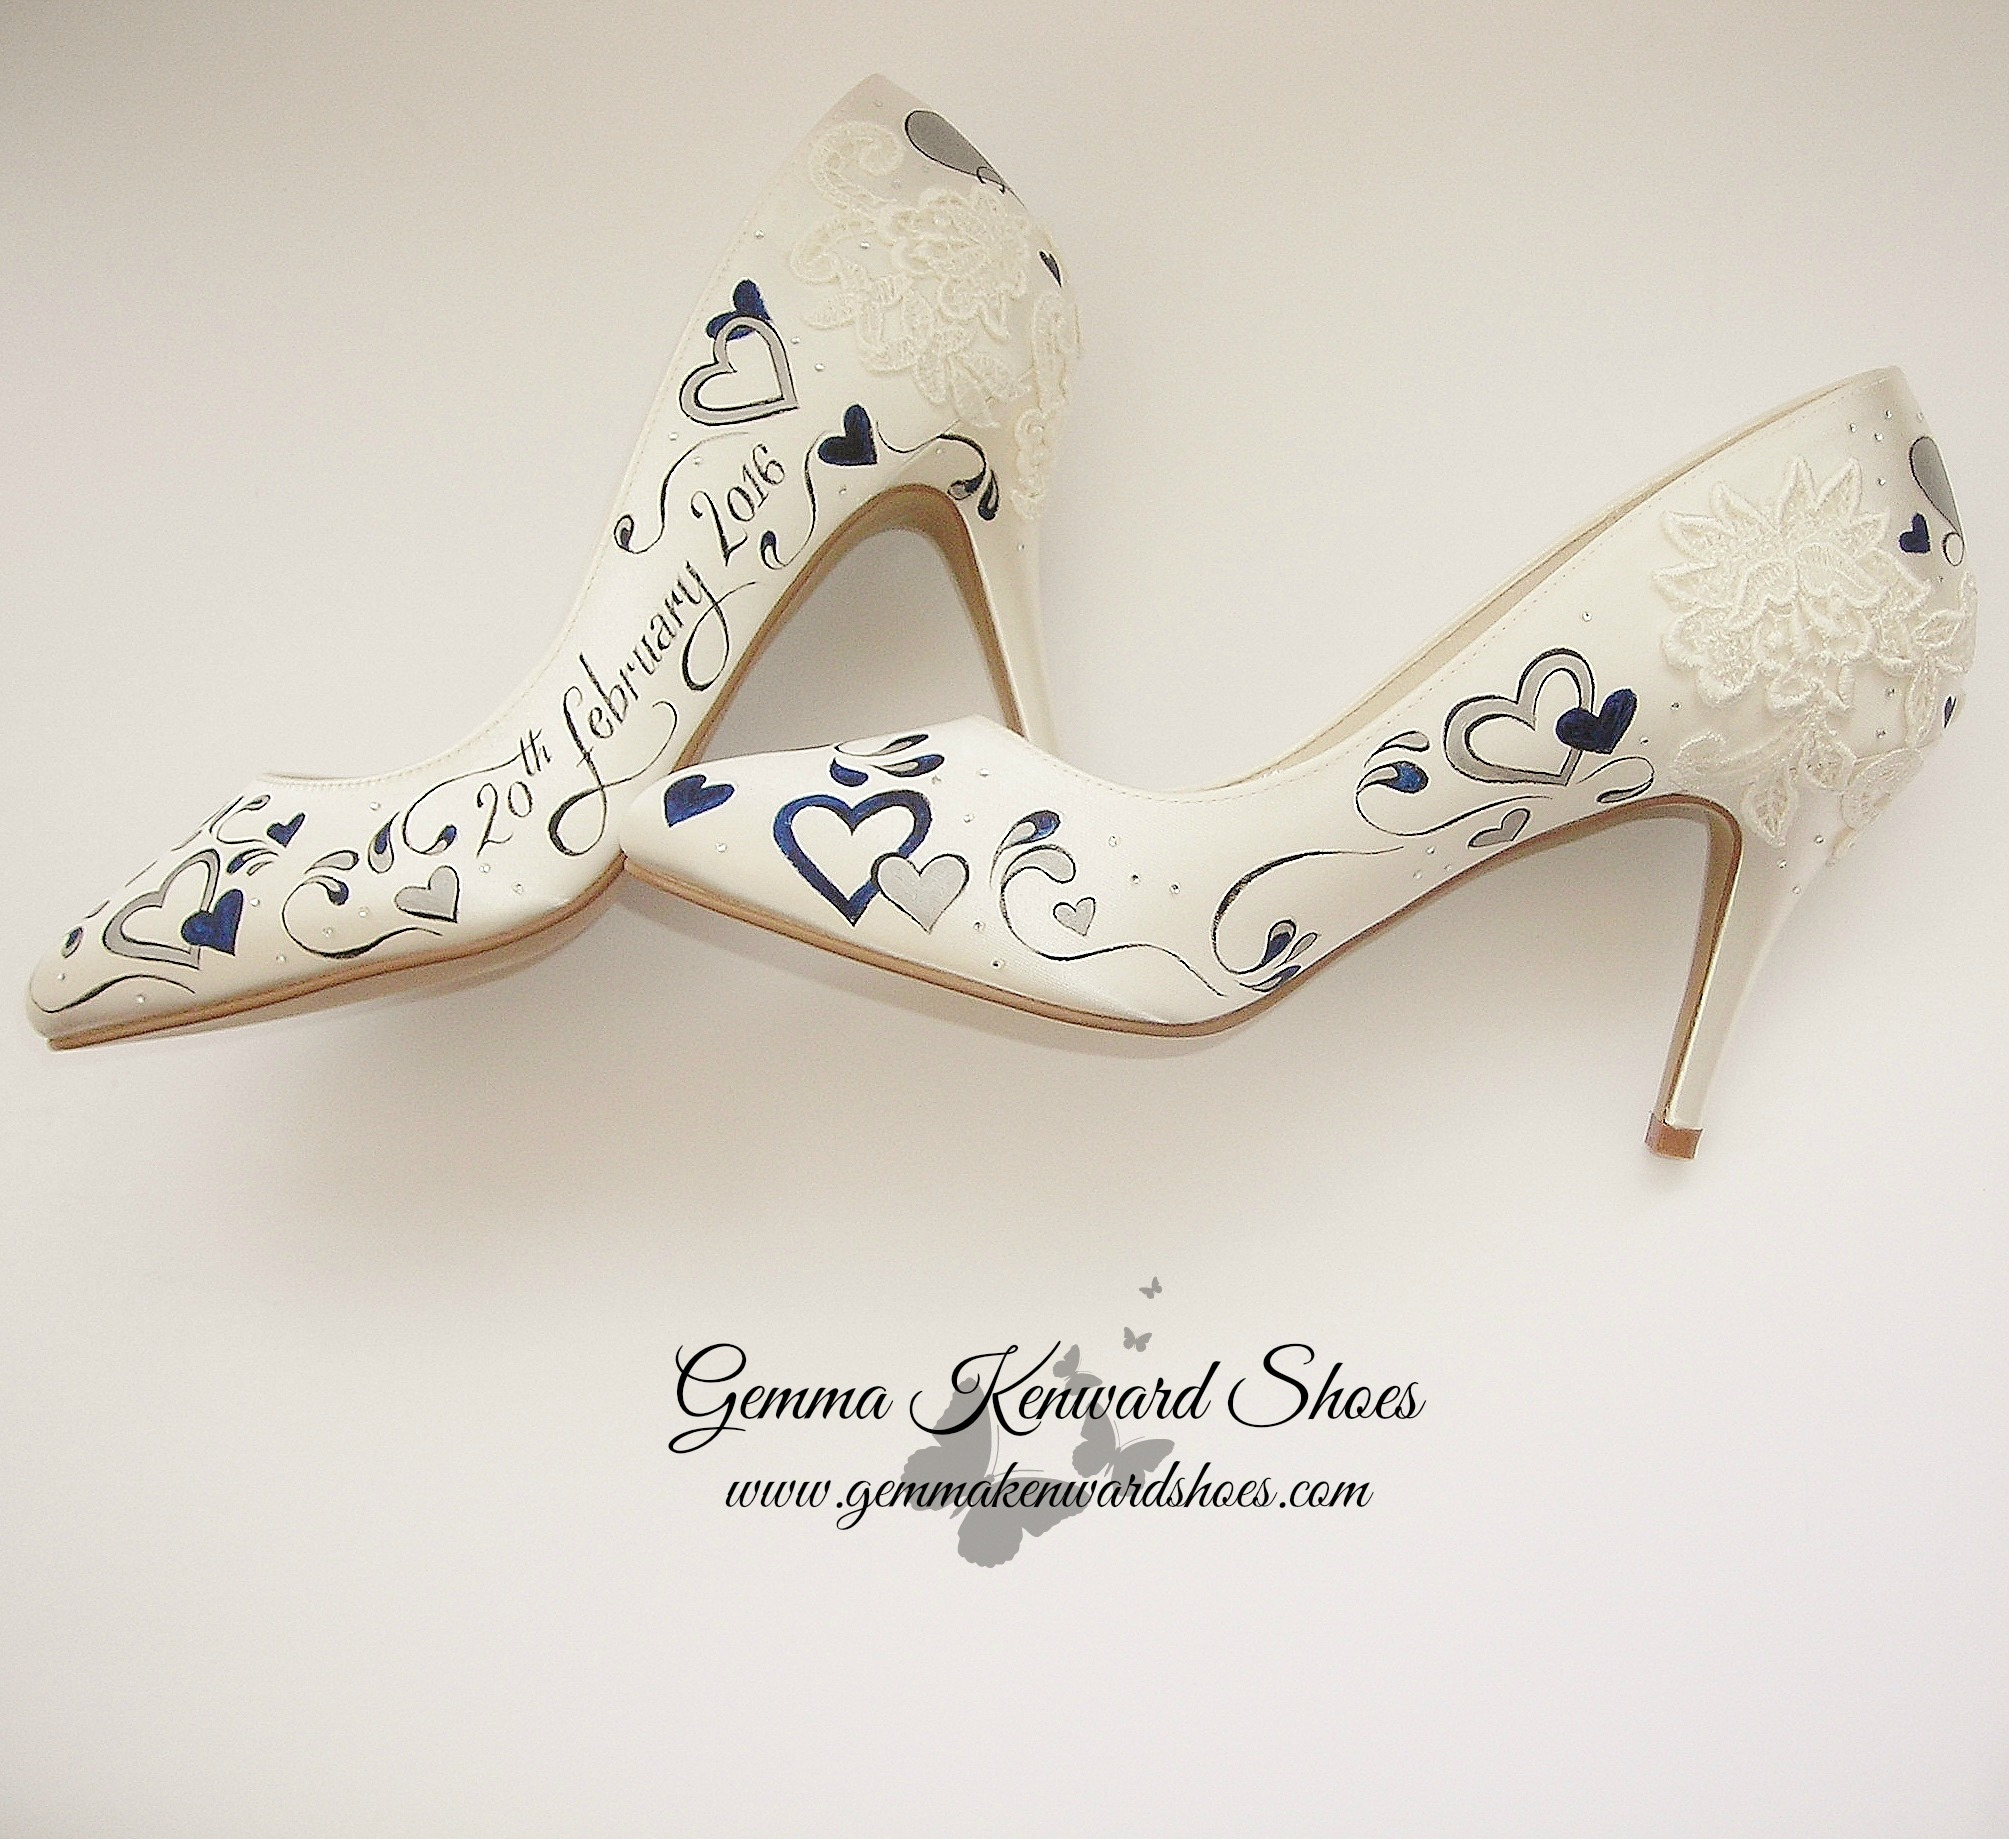 Hand Painted navy and silver hearts with applique lace added to the design for one of our beautiful brides.